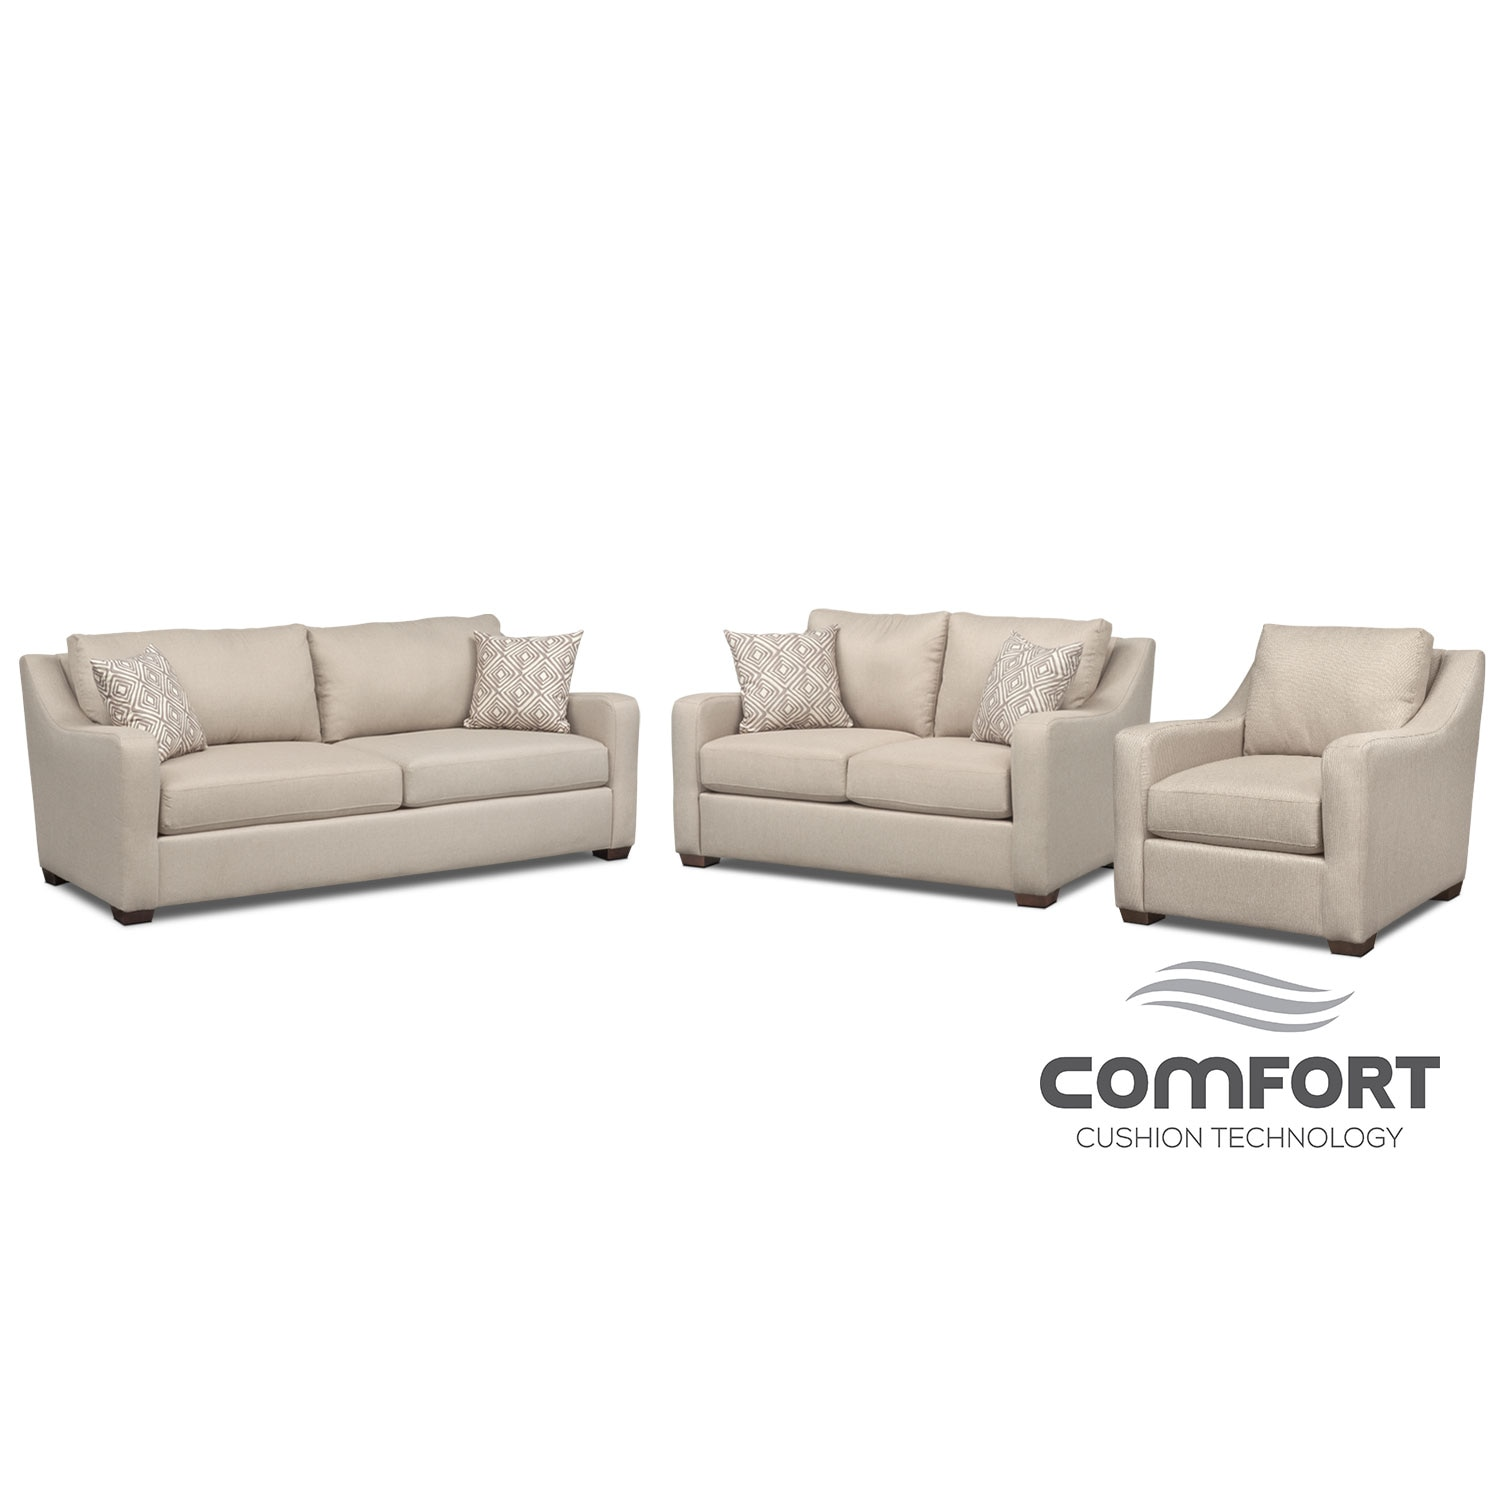 Living Room Furniture - Jules Comfort Sofa, Loveseat and Chair Set - Cream